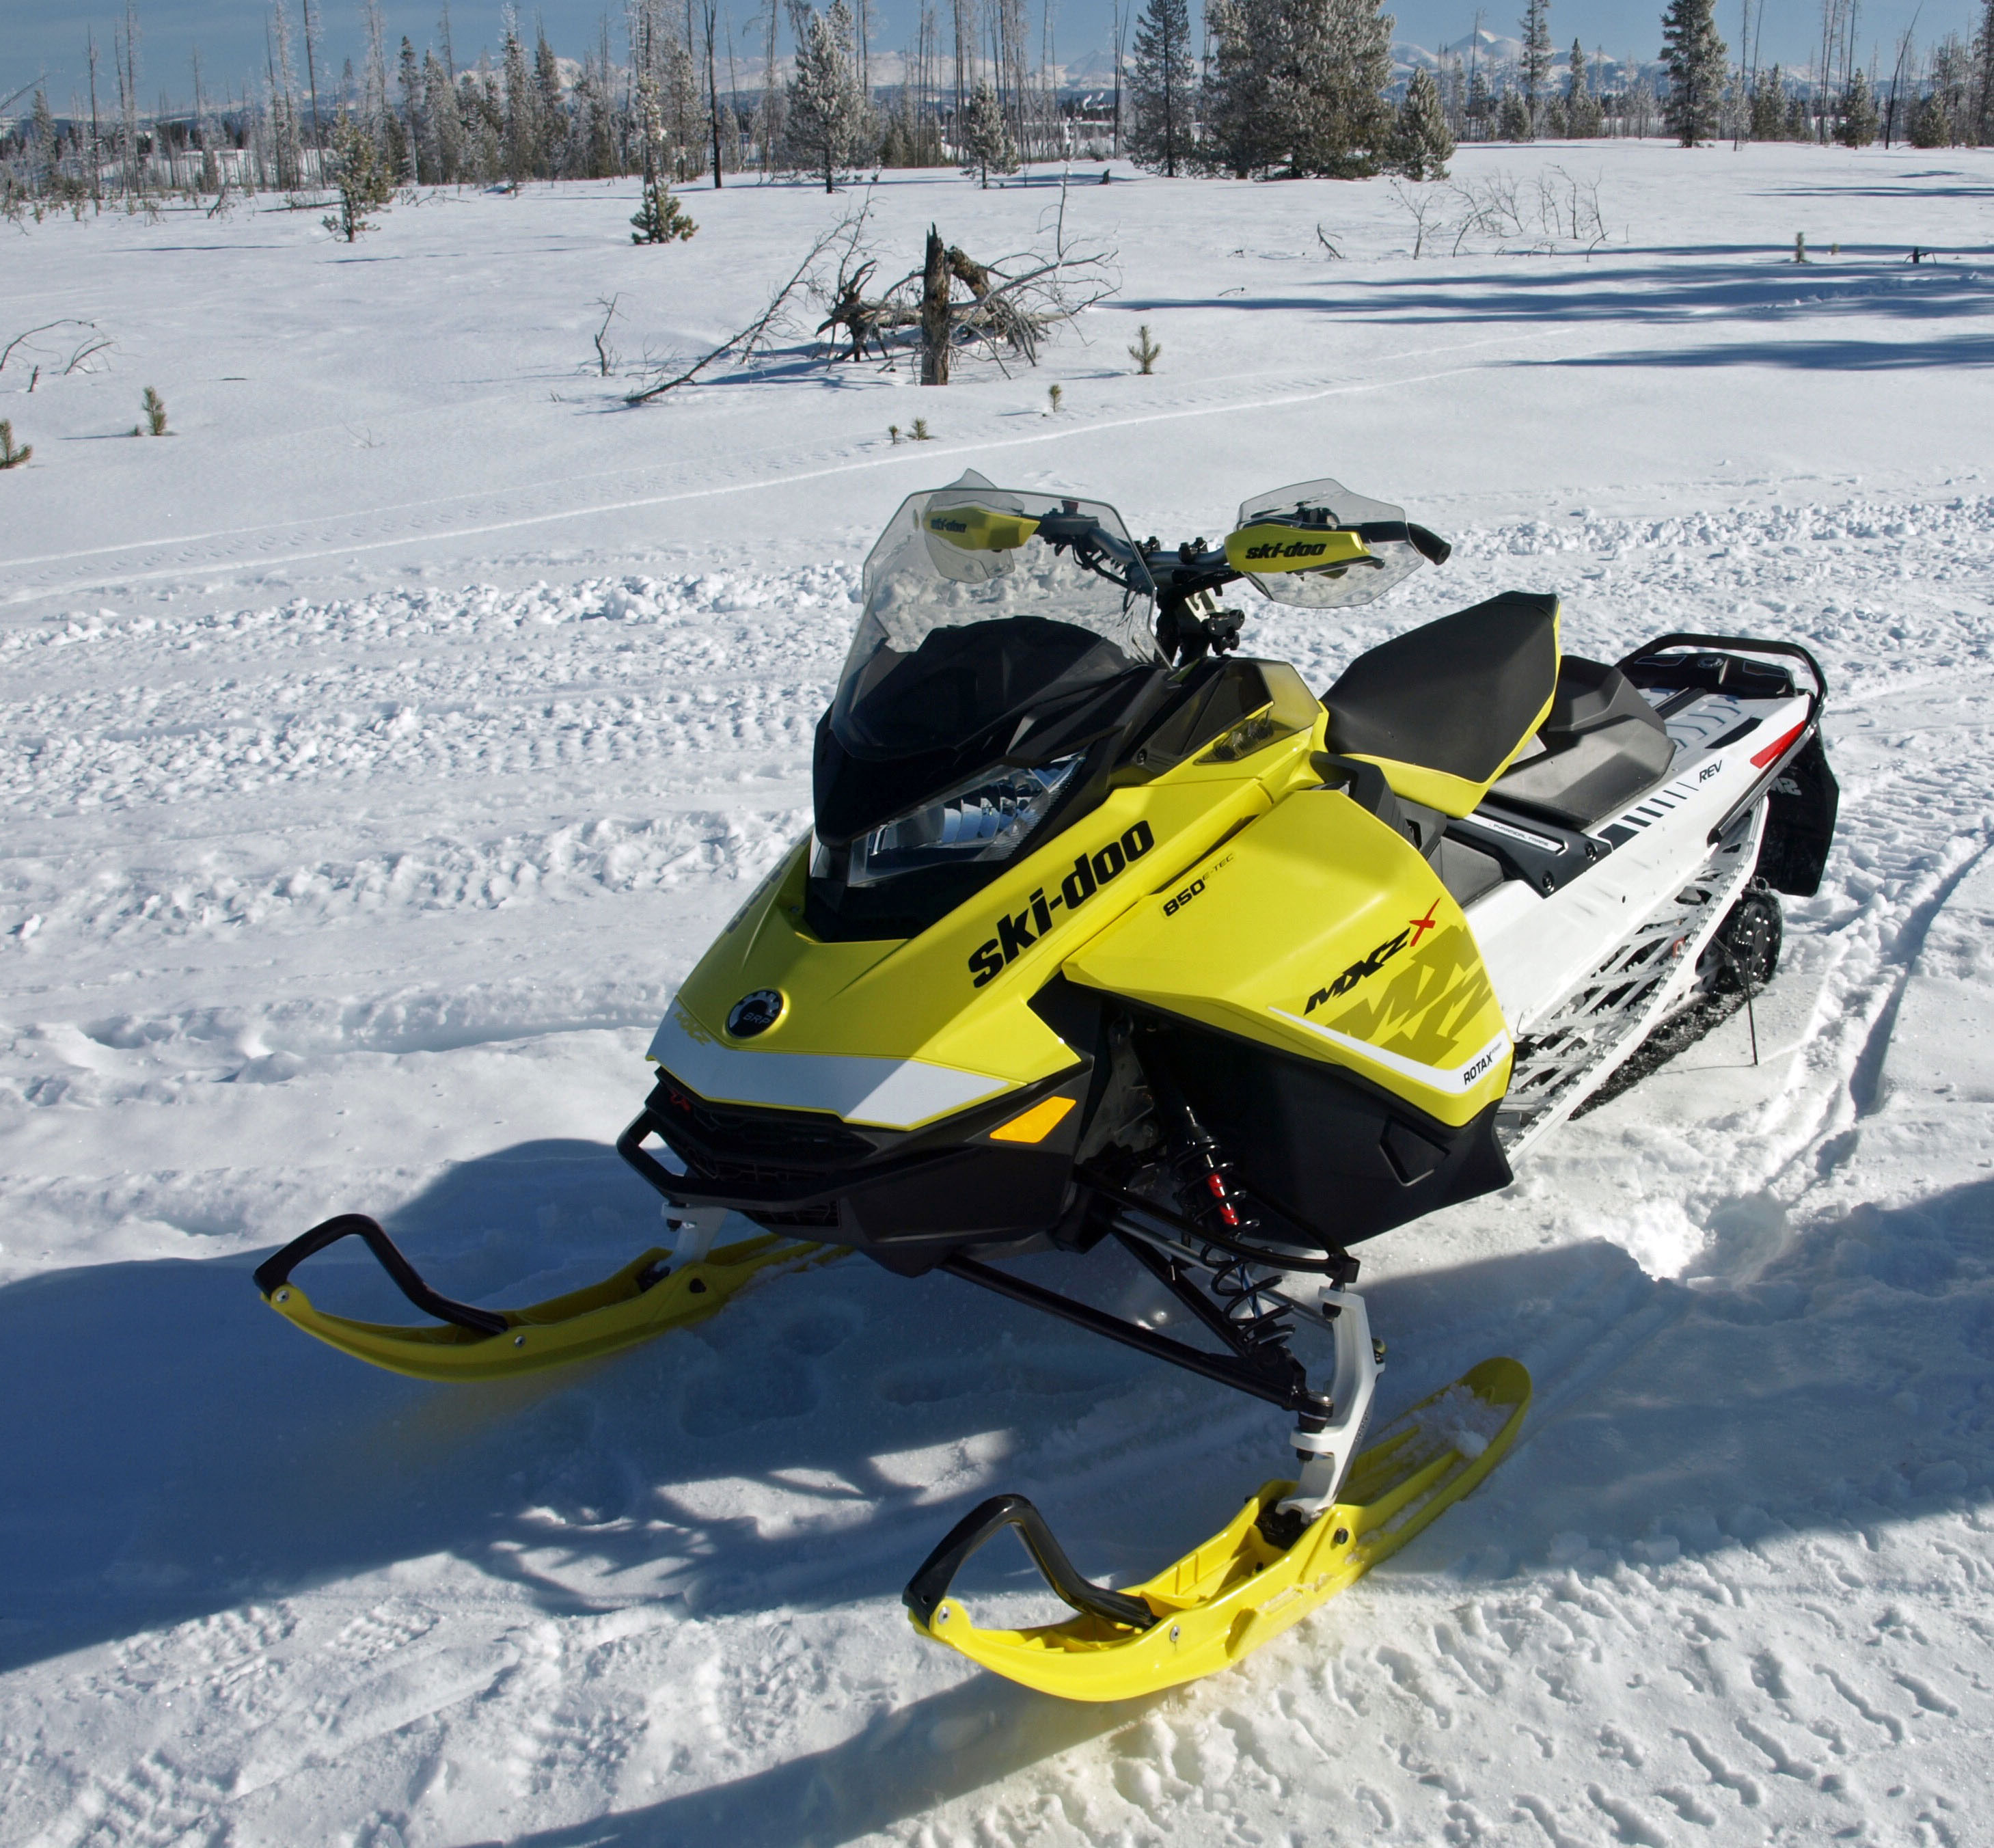 ski doo neu as - photo #11